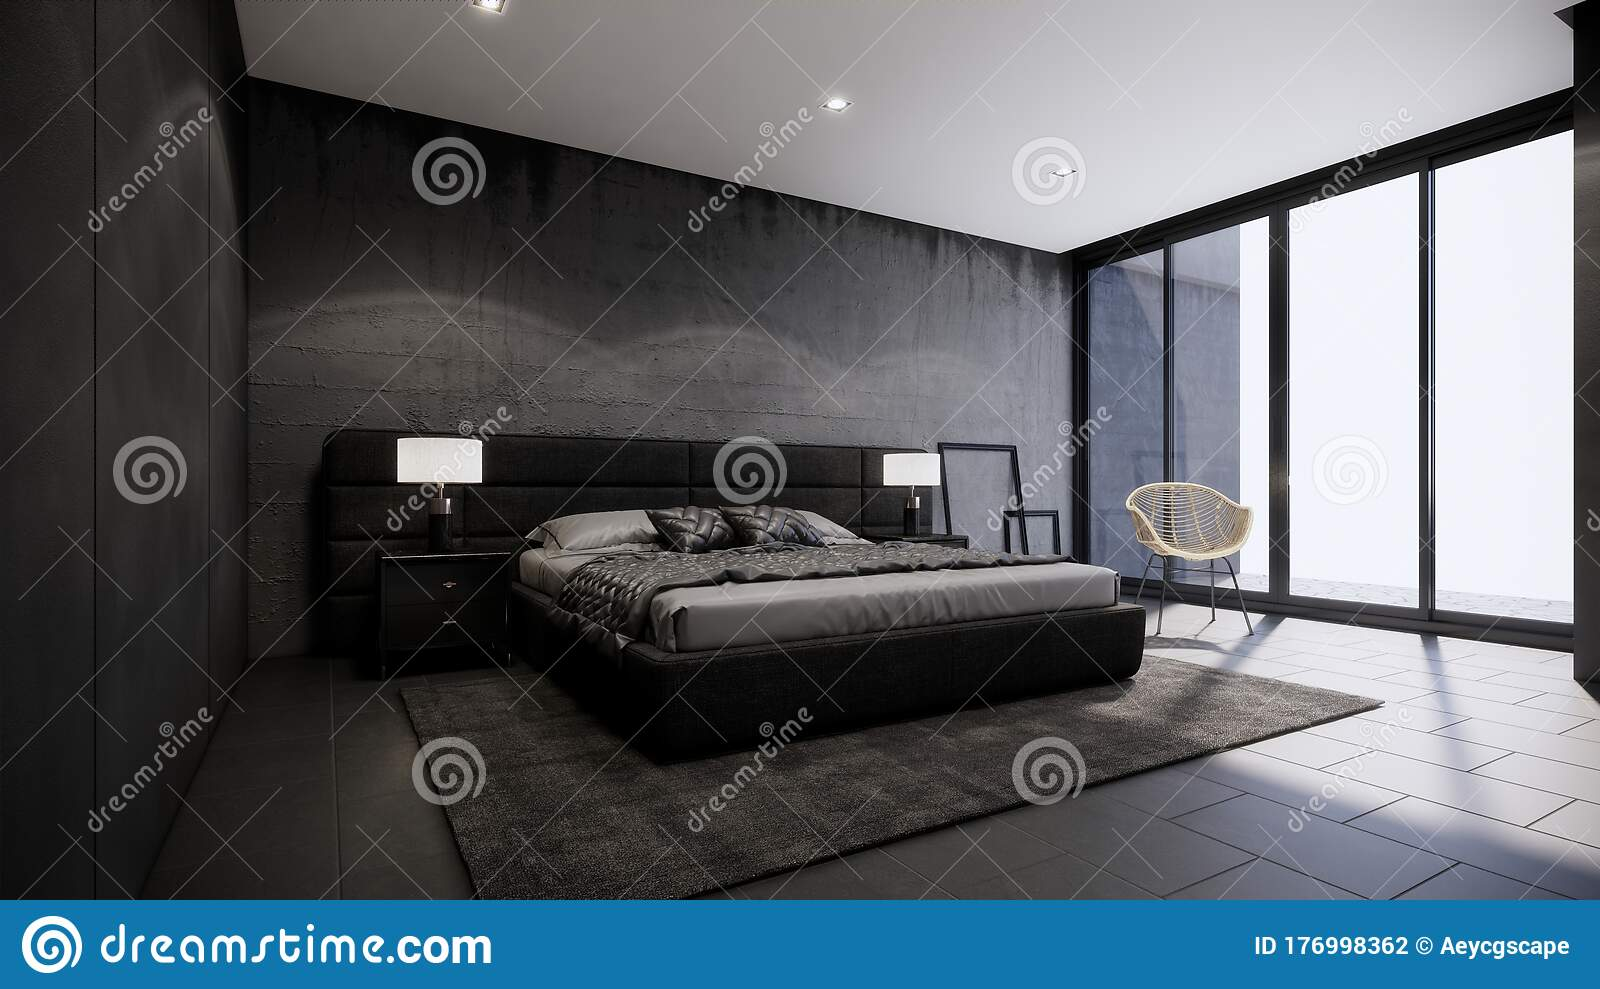 Black Bedroom Concept With Modern And Loft Interior Design 3d Rendering Background Stock Illustration Illustration Of Bedroom Beautiful 176998362